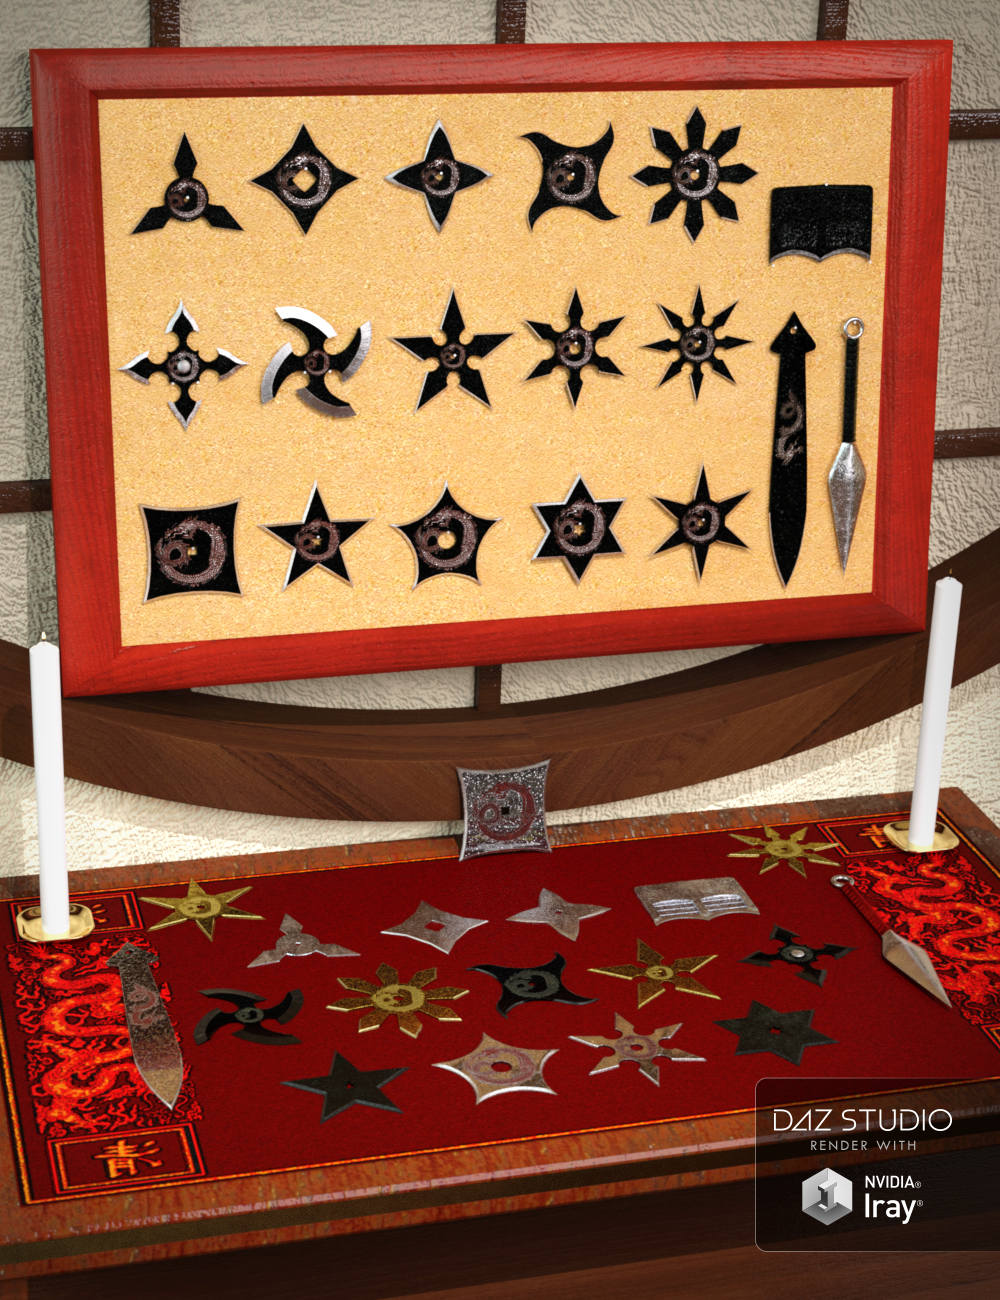 Dragon Shuriken - 18 Piece Throwing Star Set by: coolprops, 3D Models by Daz 3D